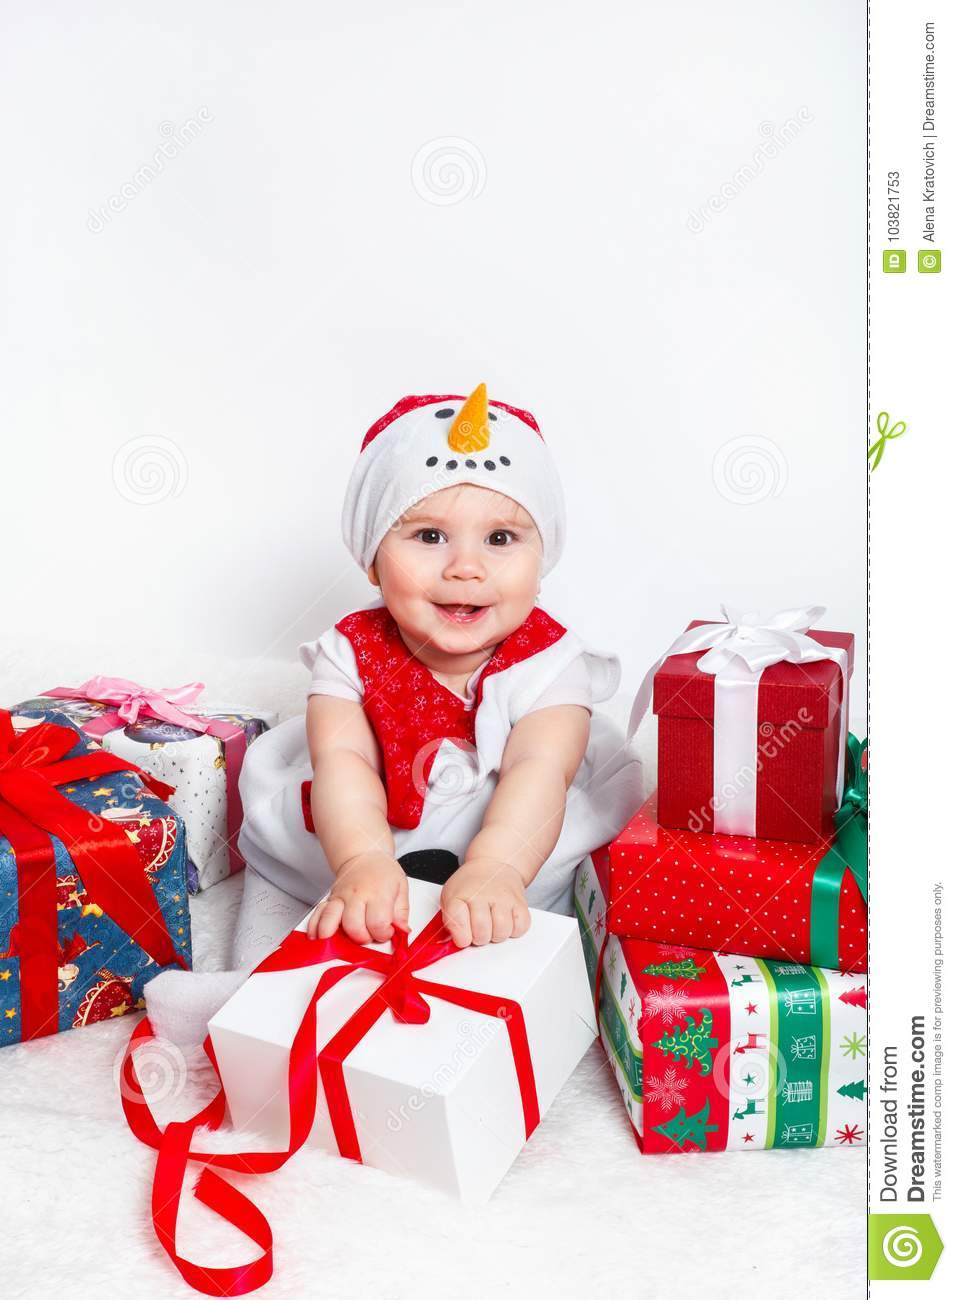 happy baby in snowman costume with christmas present gift boxs